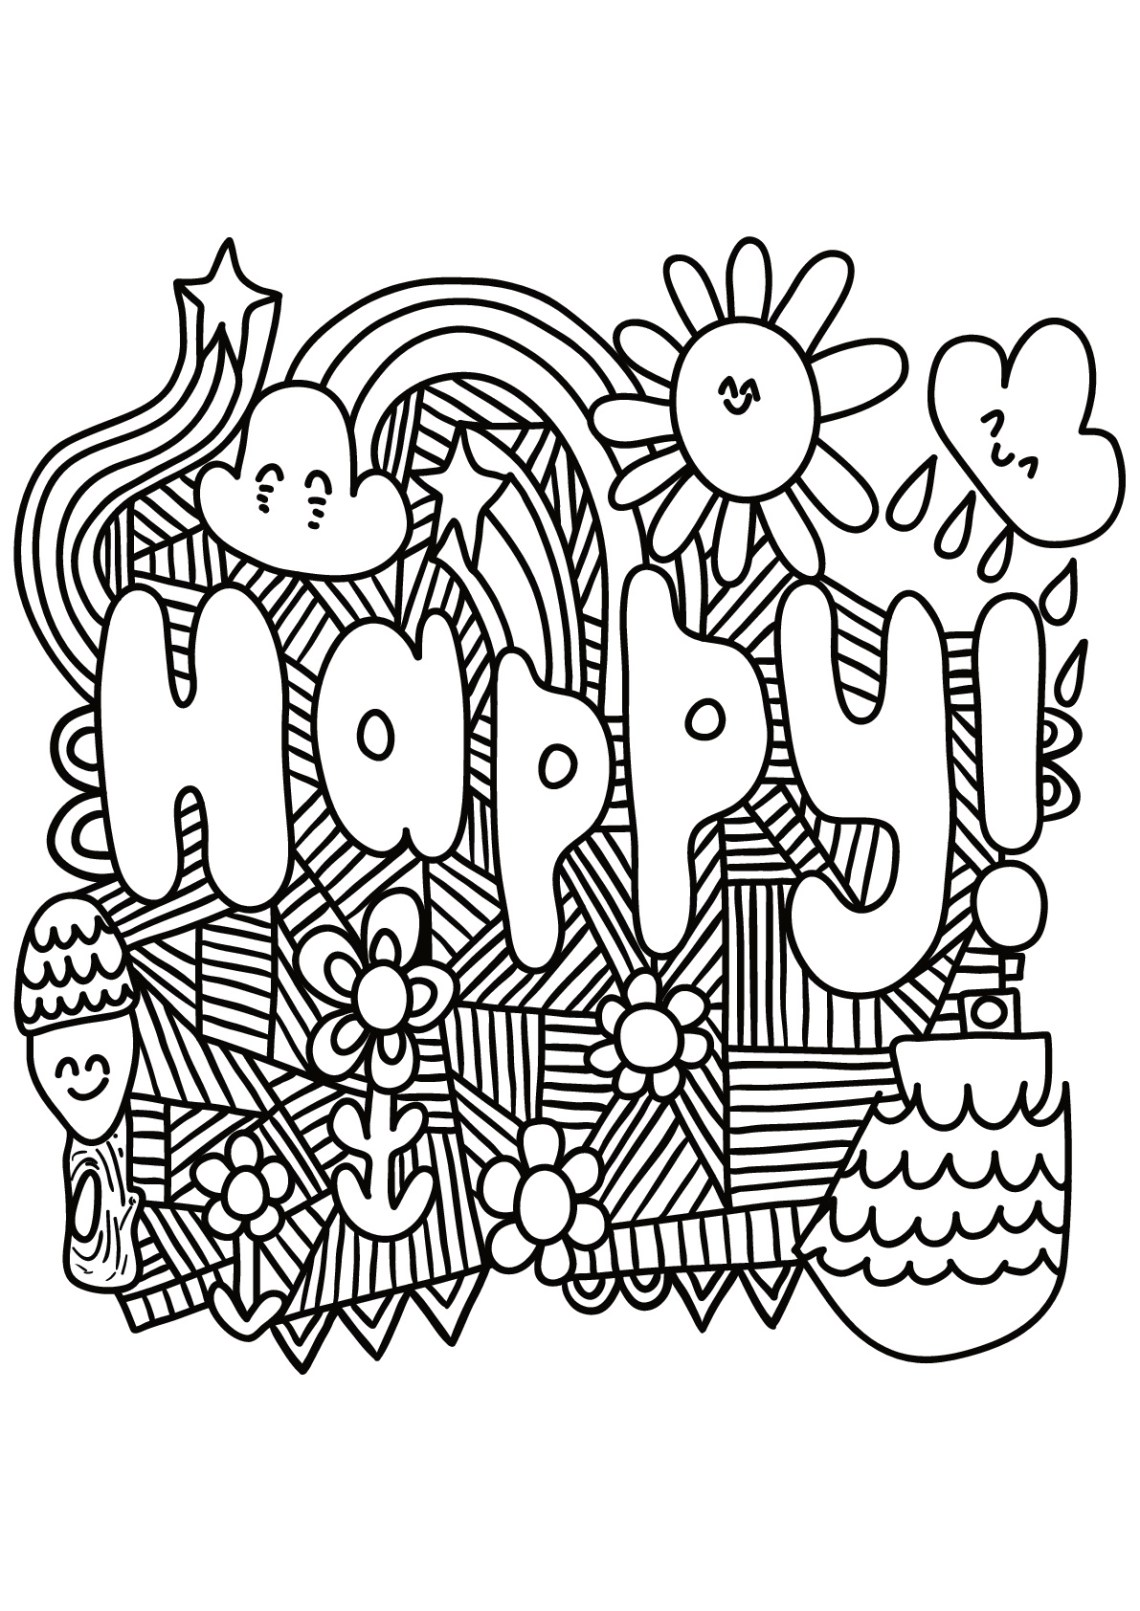 Quote Coloring Pages for Adults and Teens - Best Coloring ... | free printable colouring pages quotes